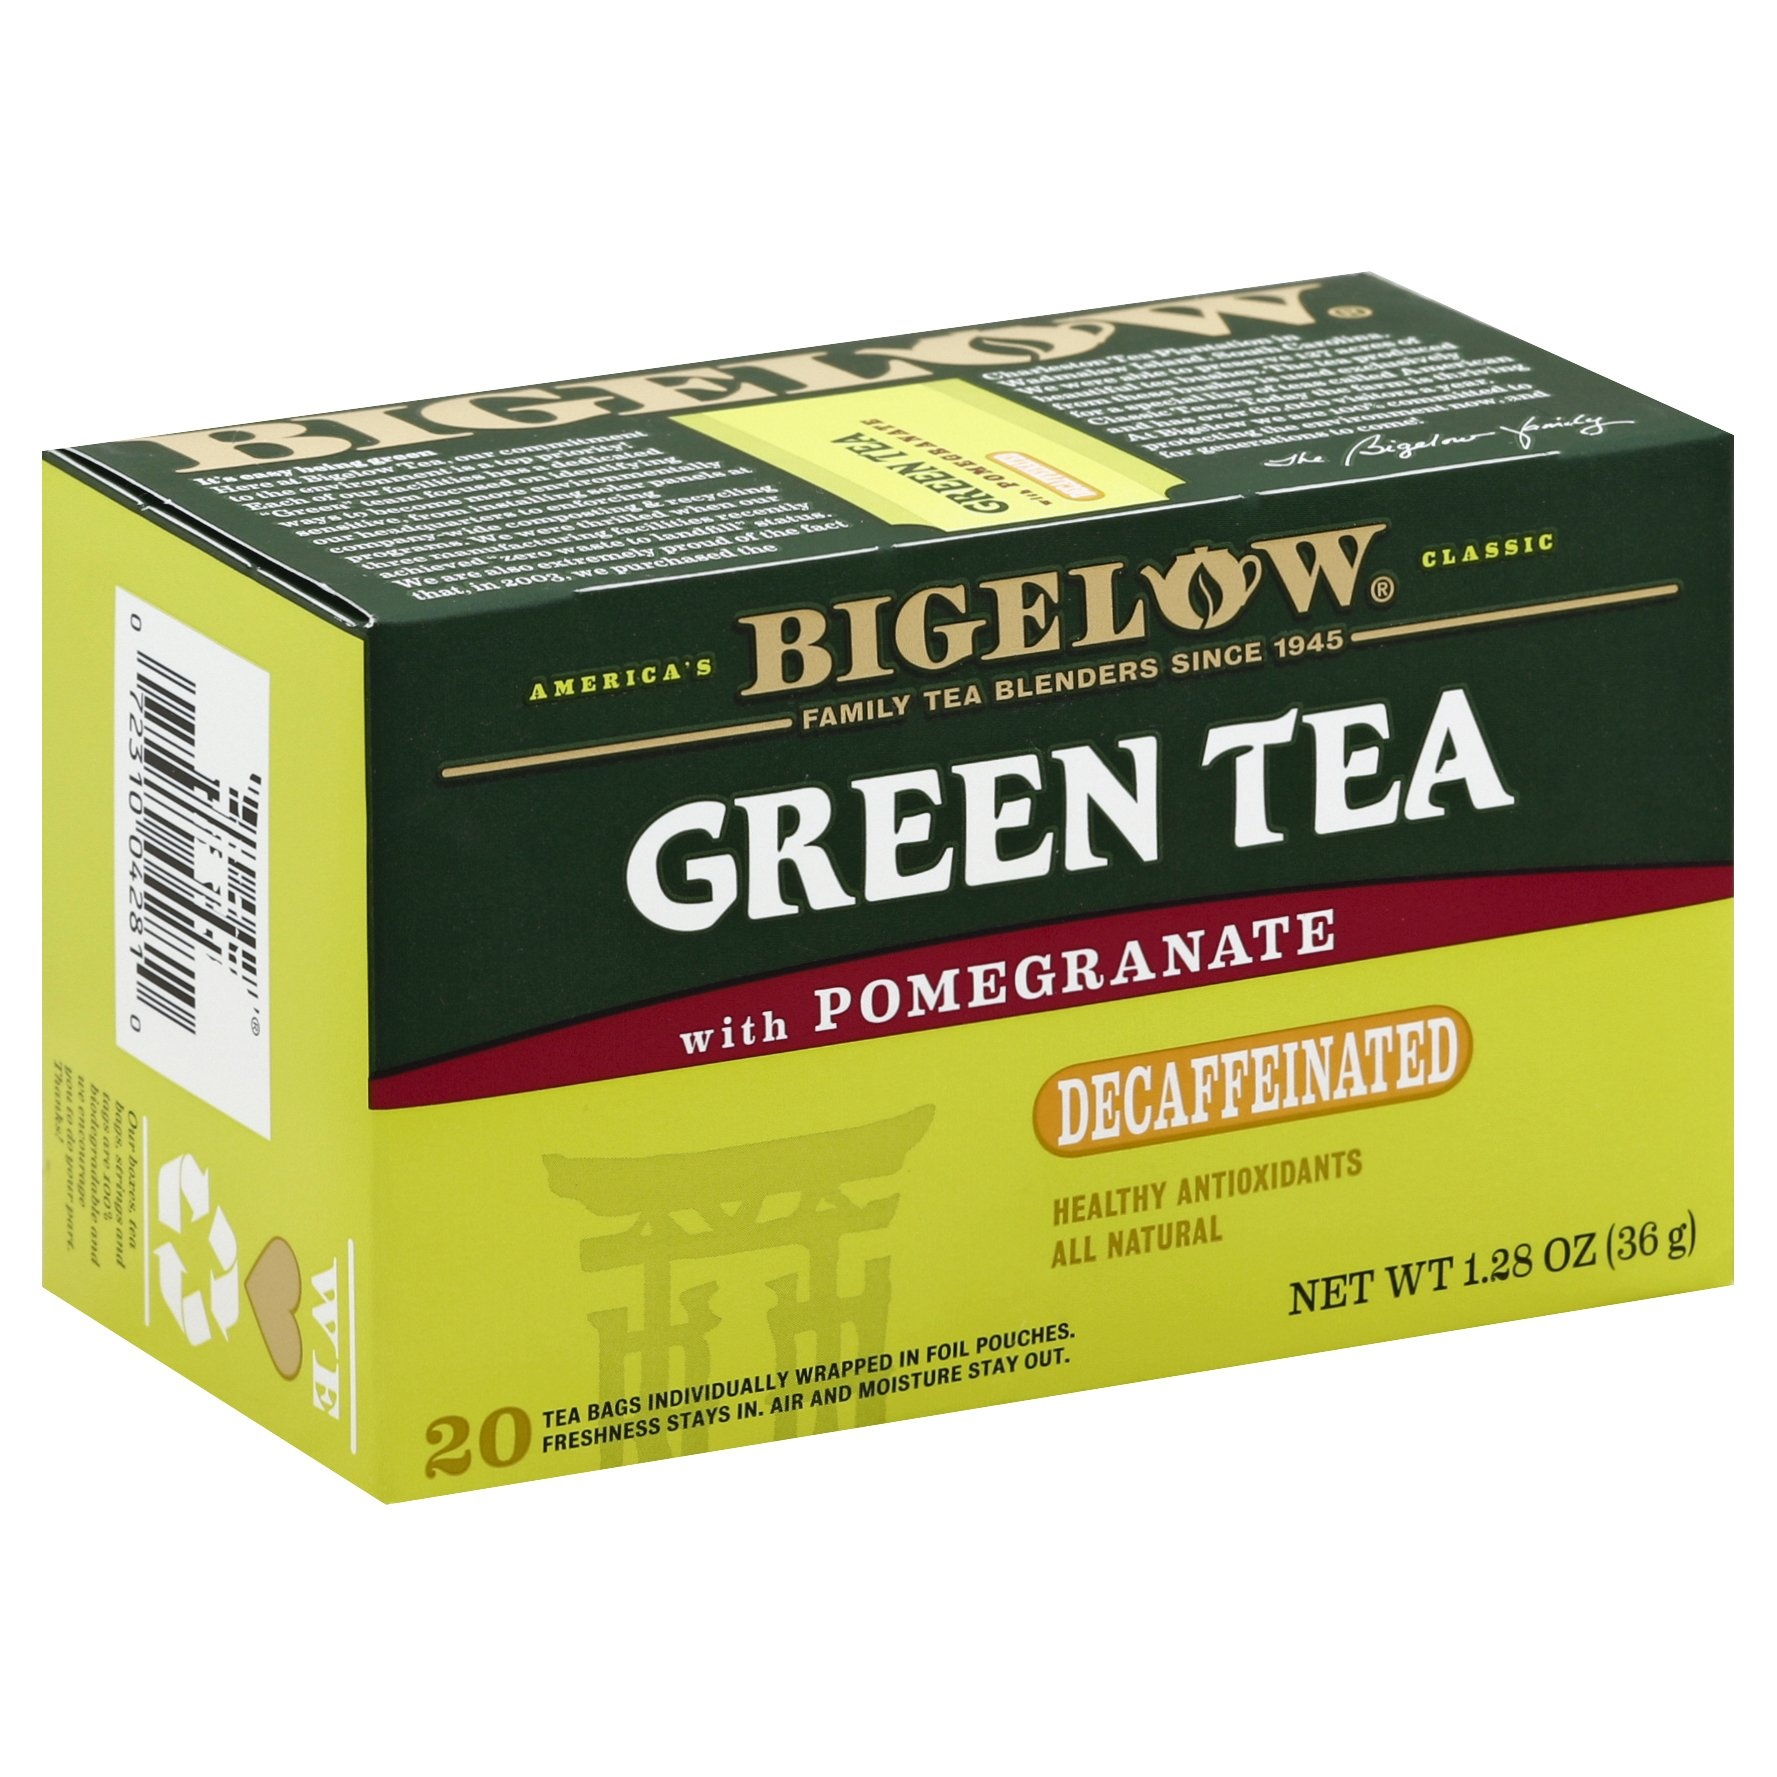 slide 1 of 7, Bigelow Tea Decaf Green W Pomegranate,